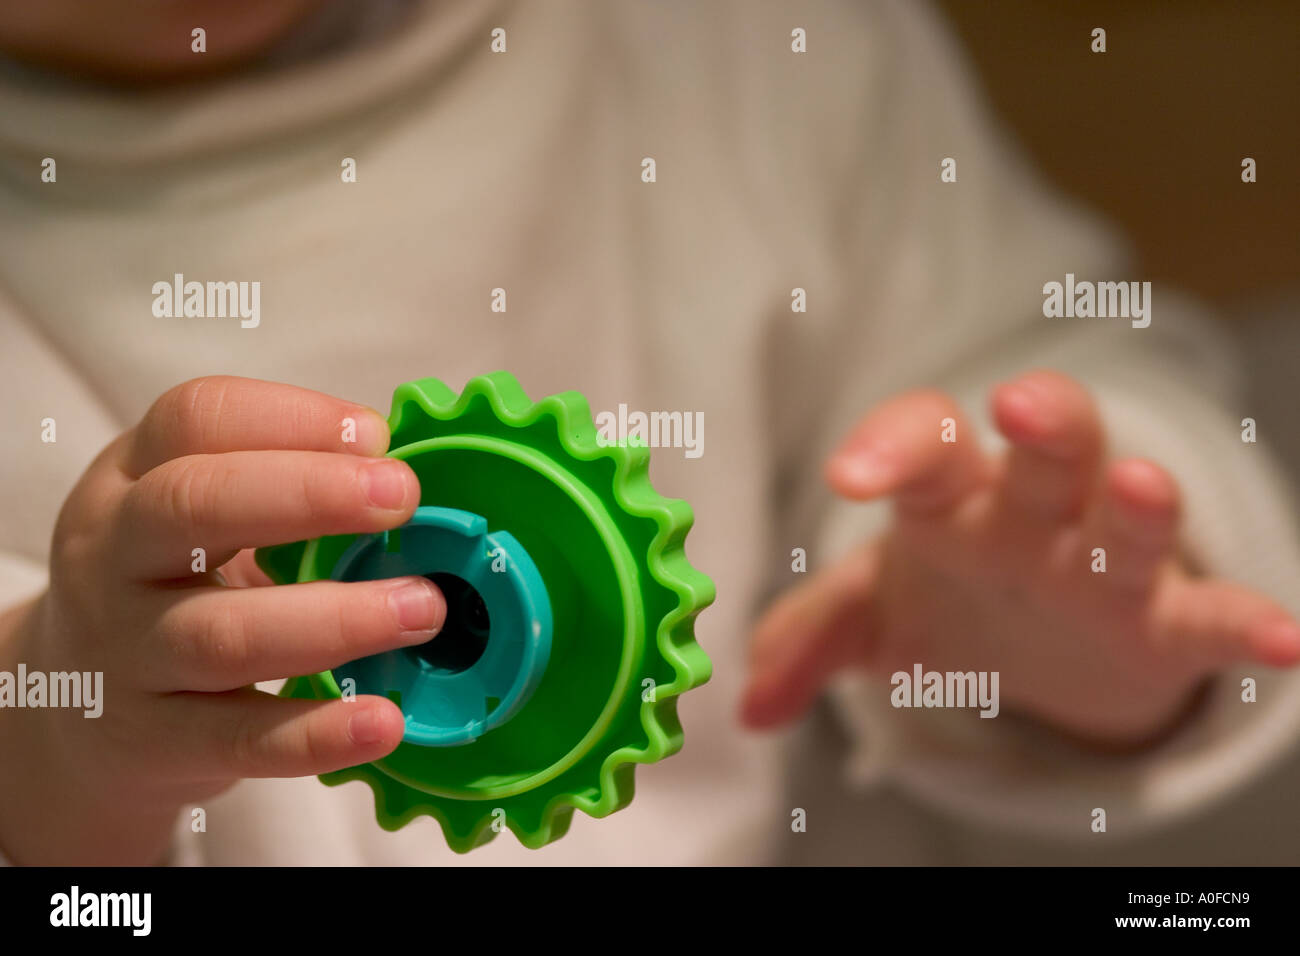 Young child plays with cog-shape toy - Stock Image